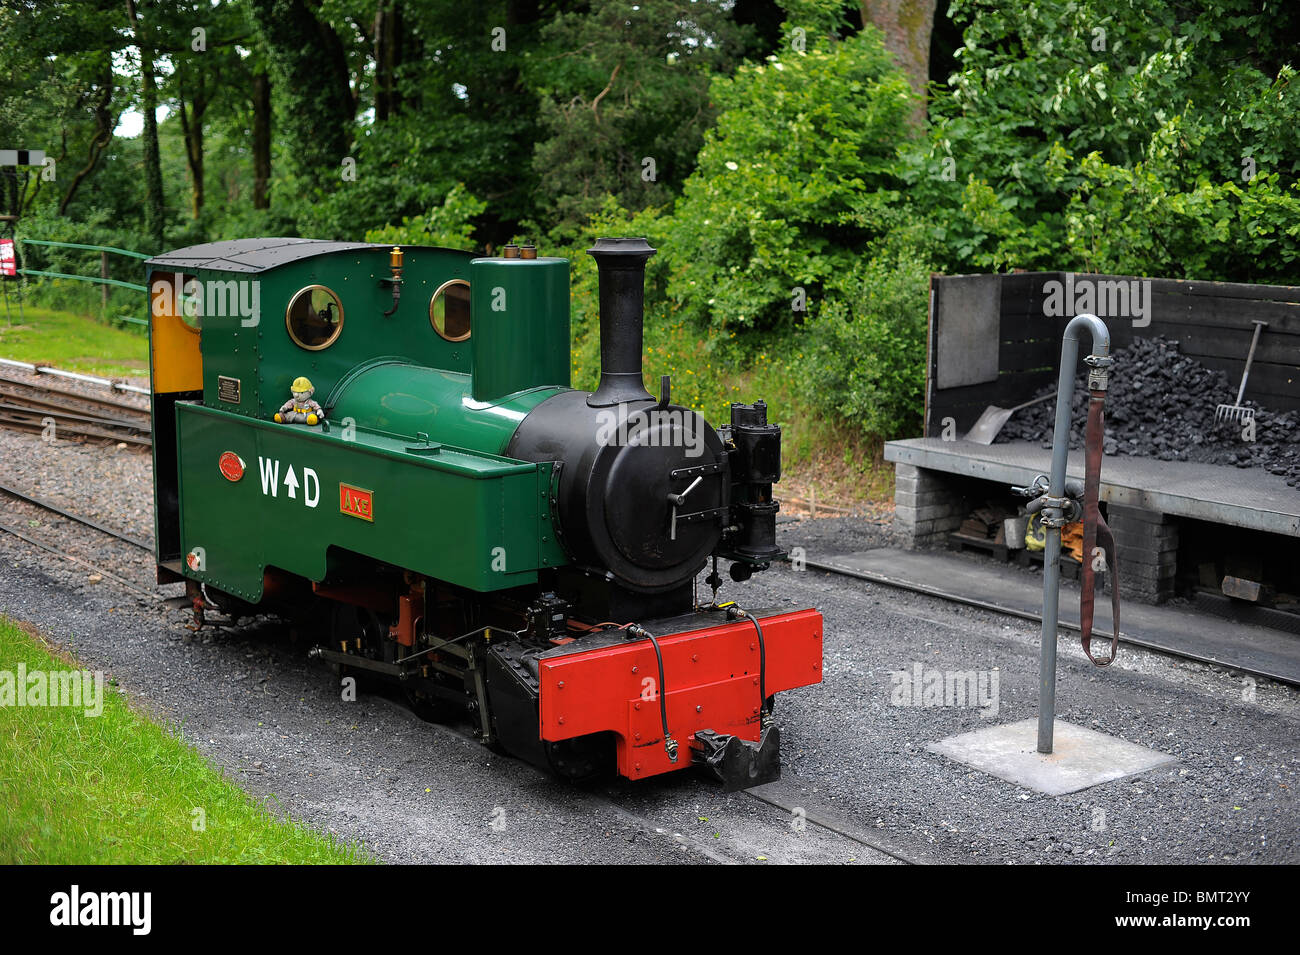 A train pictured at Woody Bay train station, in North Devon. - Stock Image